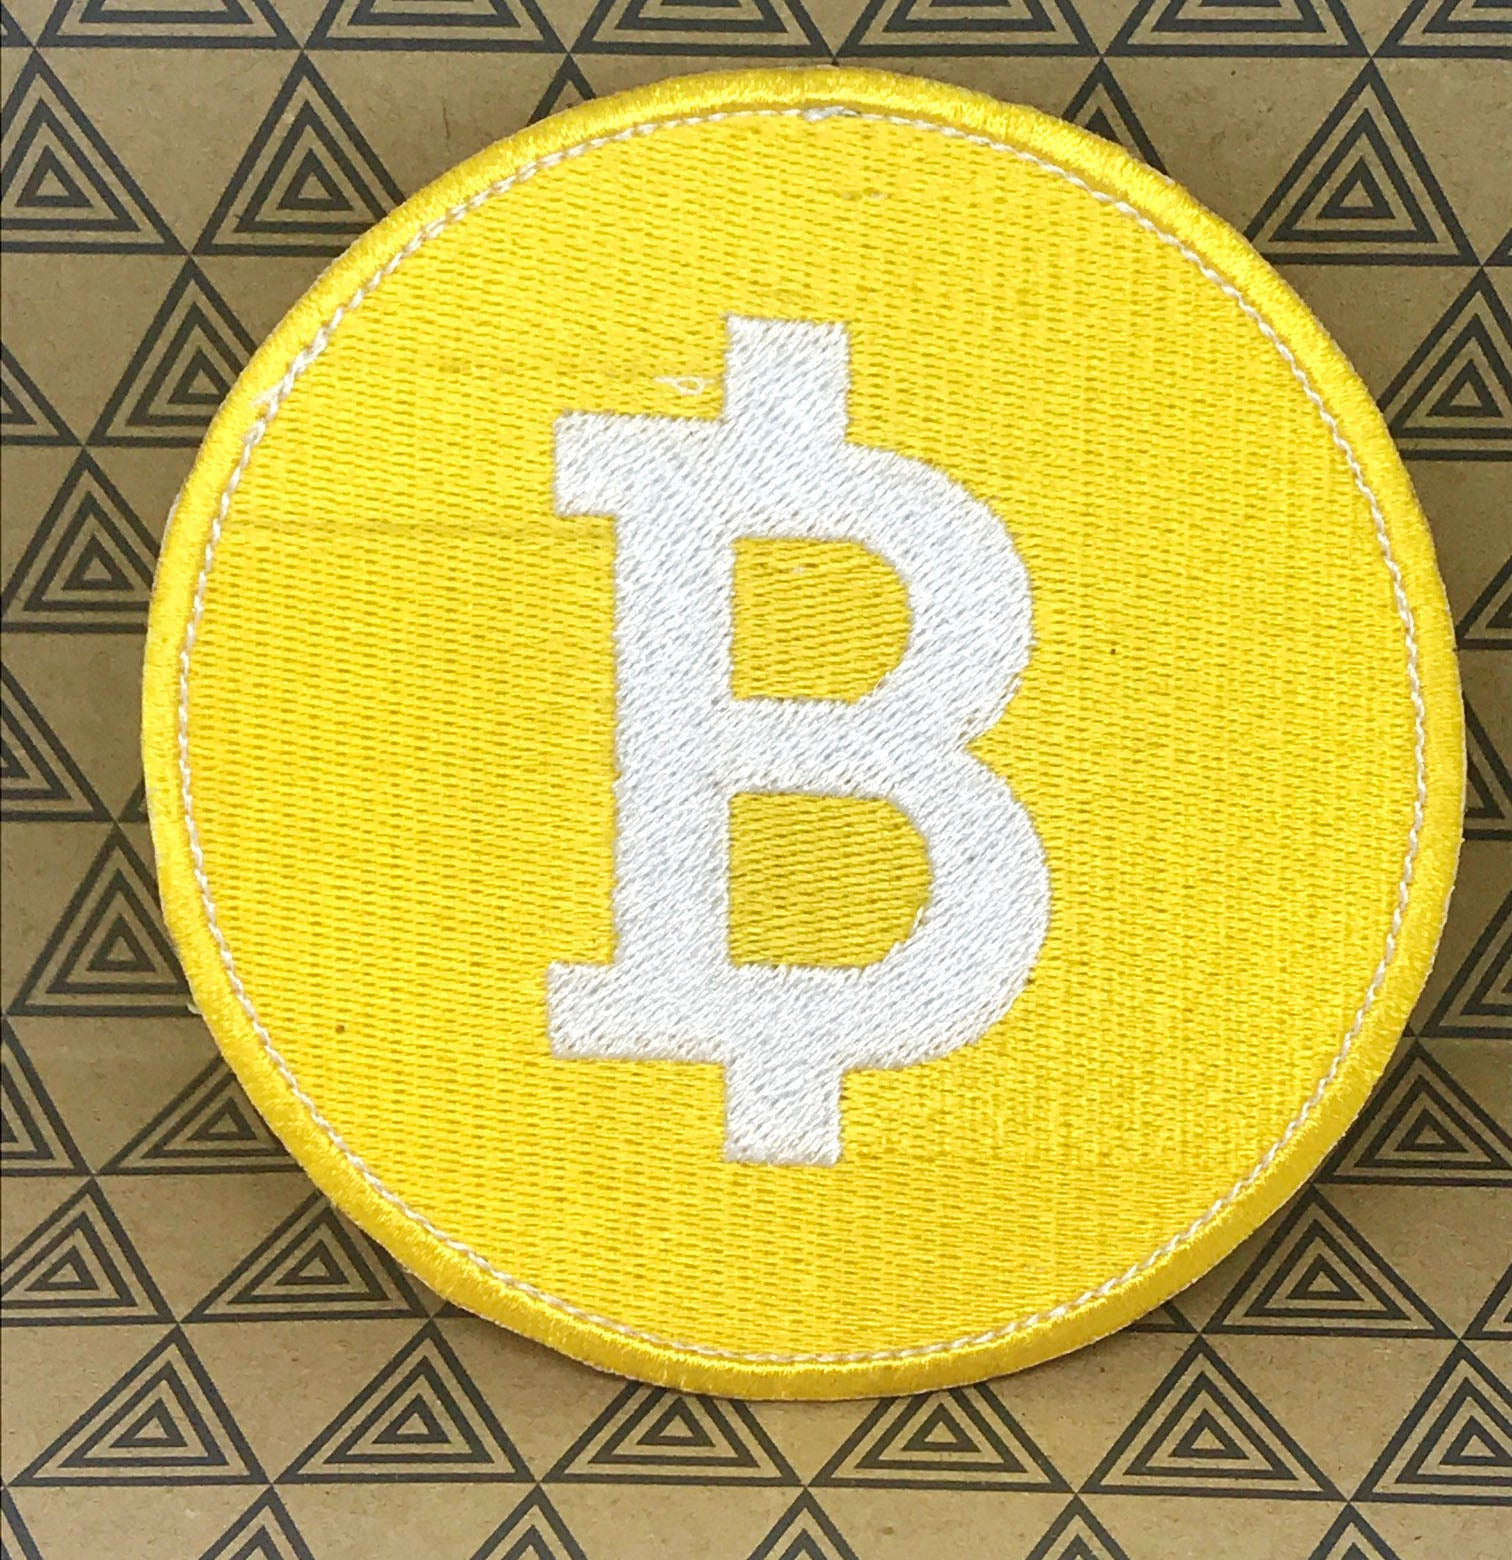 Bitcoin Digital Cryptocurrency new logo collection Iron on sew on Embroidered Patch - Patches-Badges